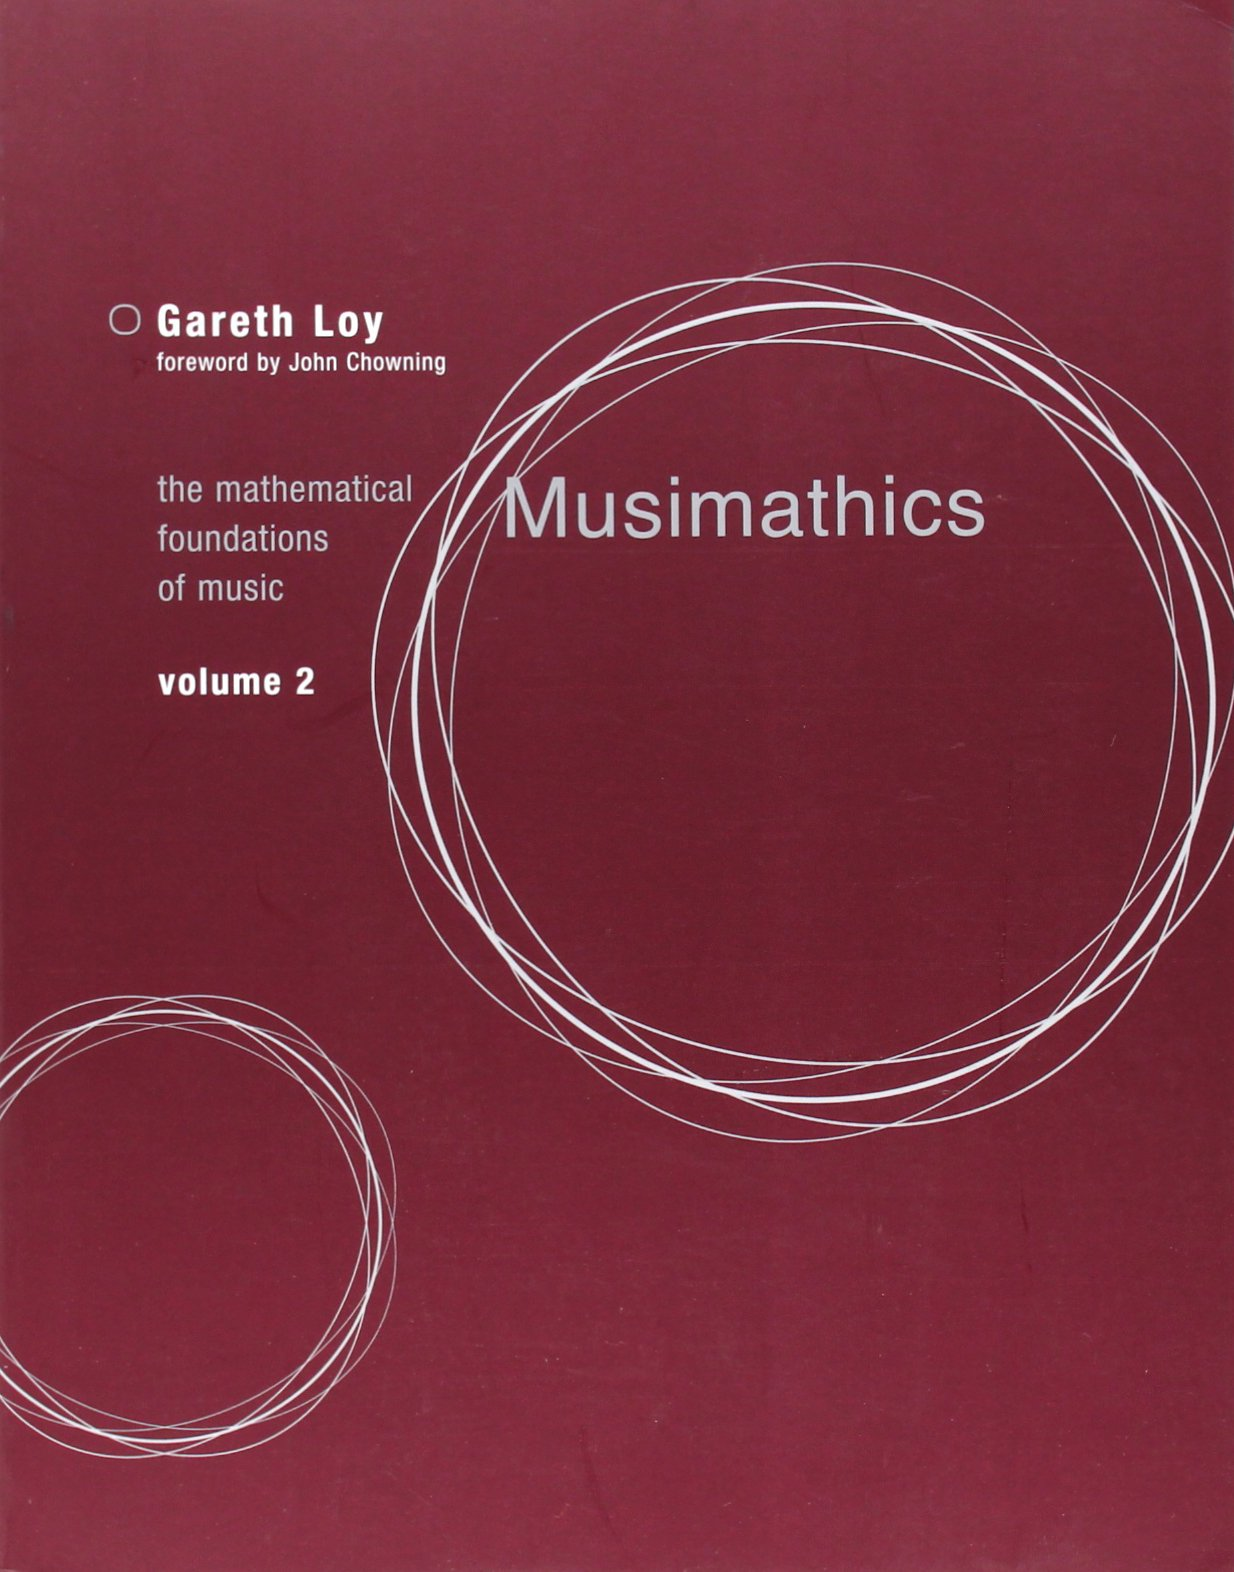 Musimathics, Volume 2: The Mathematical Foundations of Music (Mit Press)